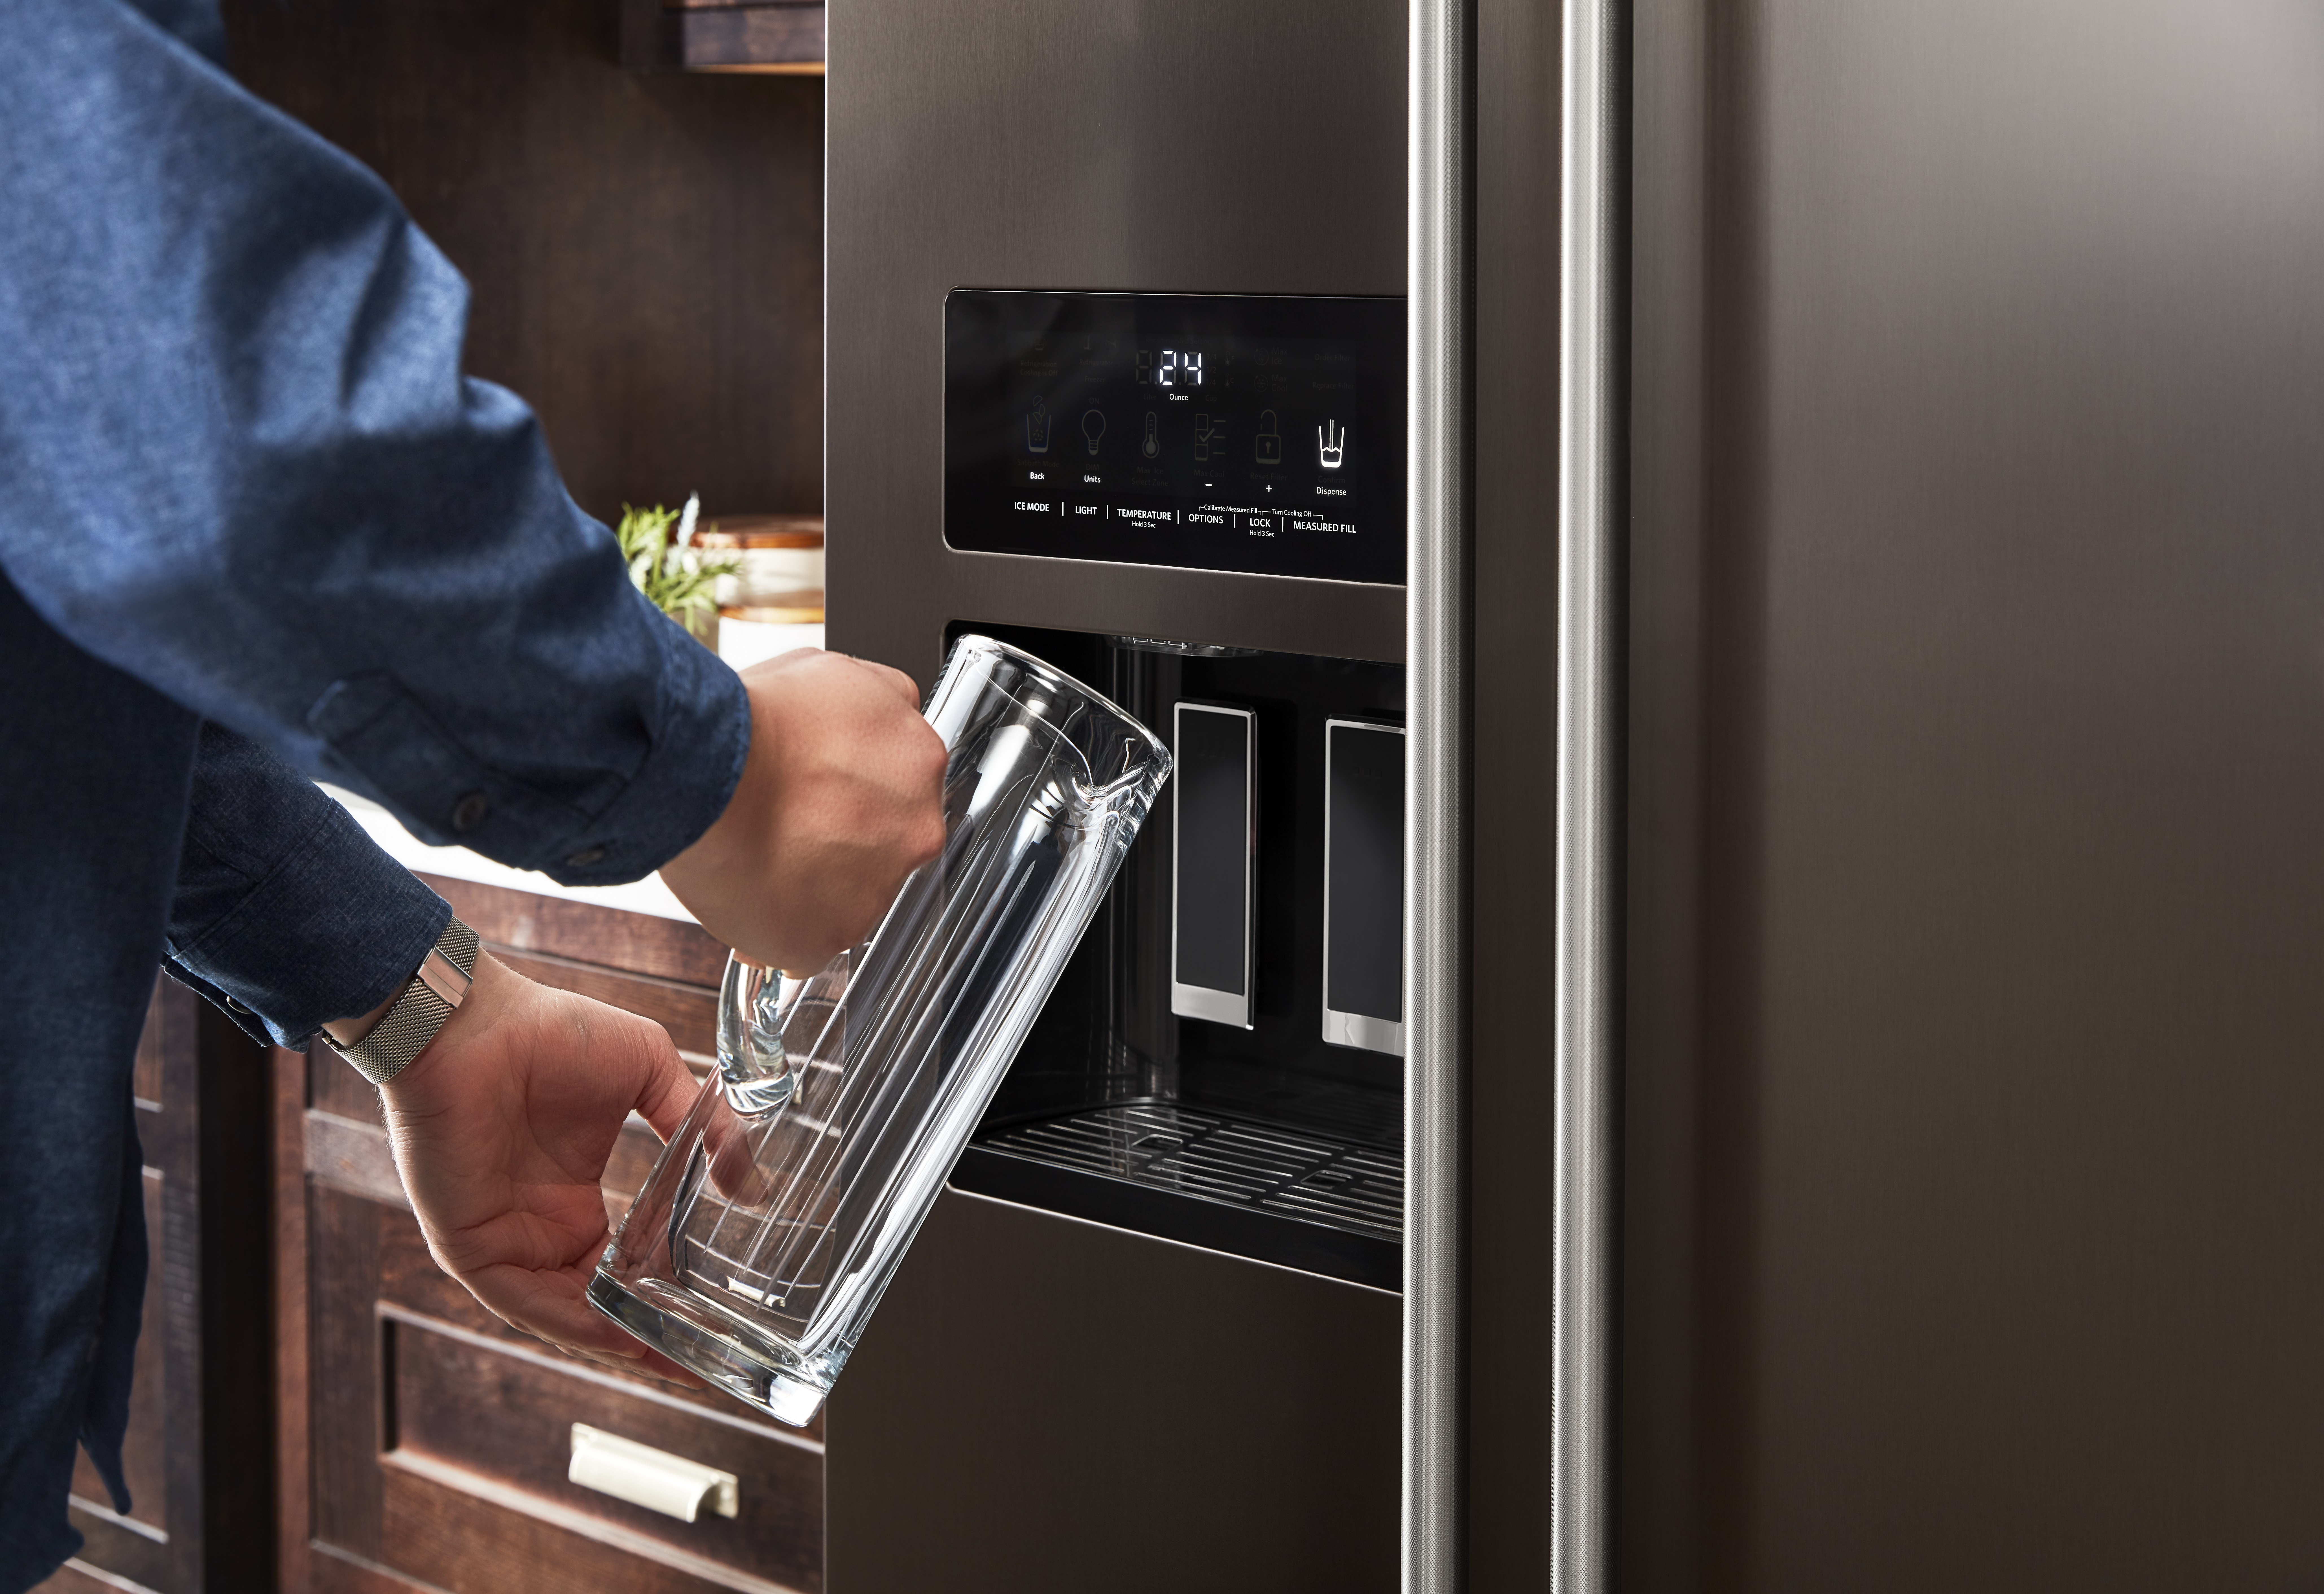 Person using water dispenser on KitchenAid krsf705hbs French door refrigerator